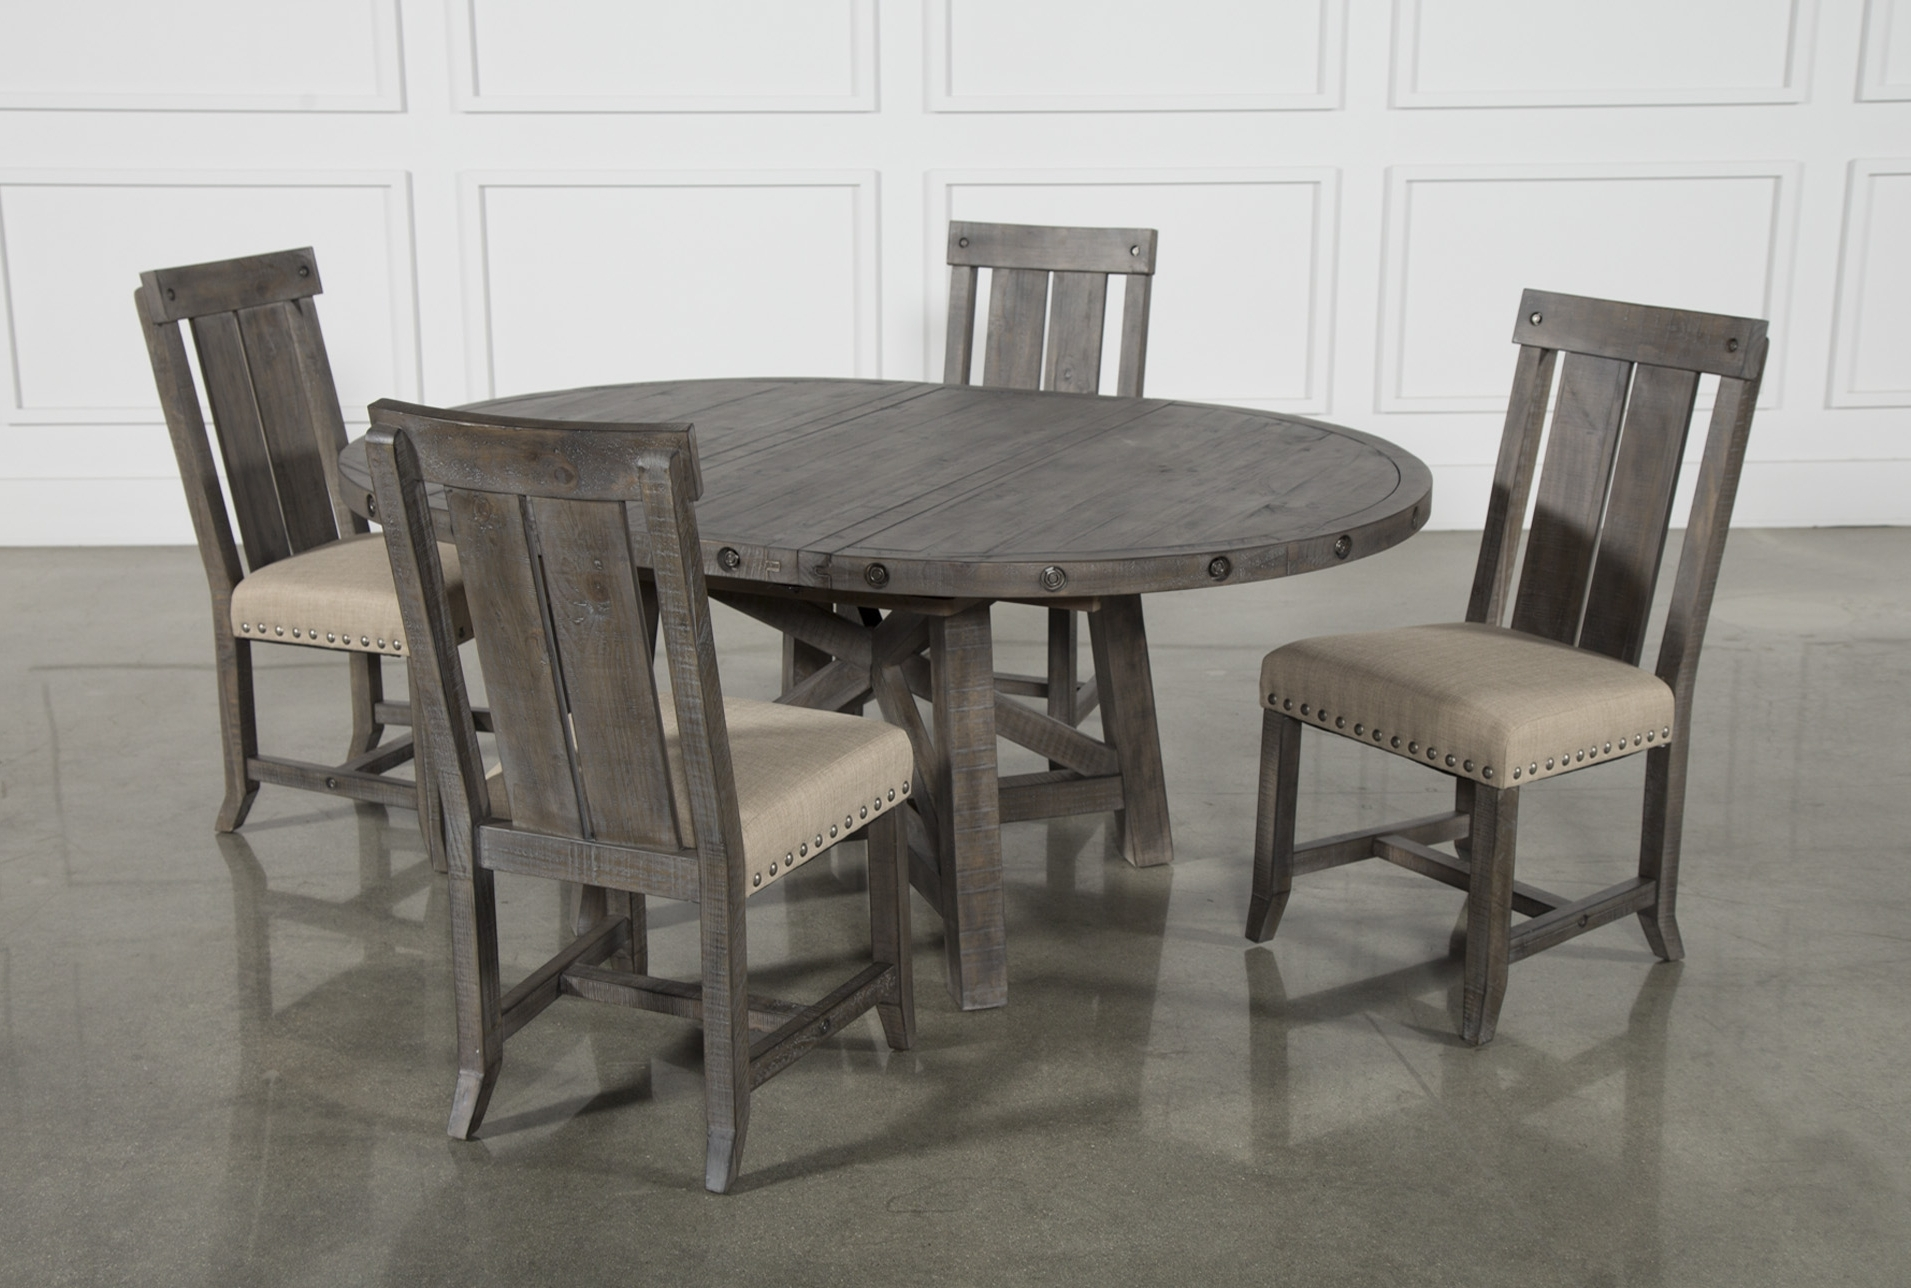 Jaxon 5 Piece Extension Round Dining Sets With Wood Chairs with regard to Most Up-to-Date Jaxon Grey 5 Piece Round Extension Dining Set W/wood Chairs